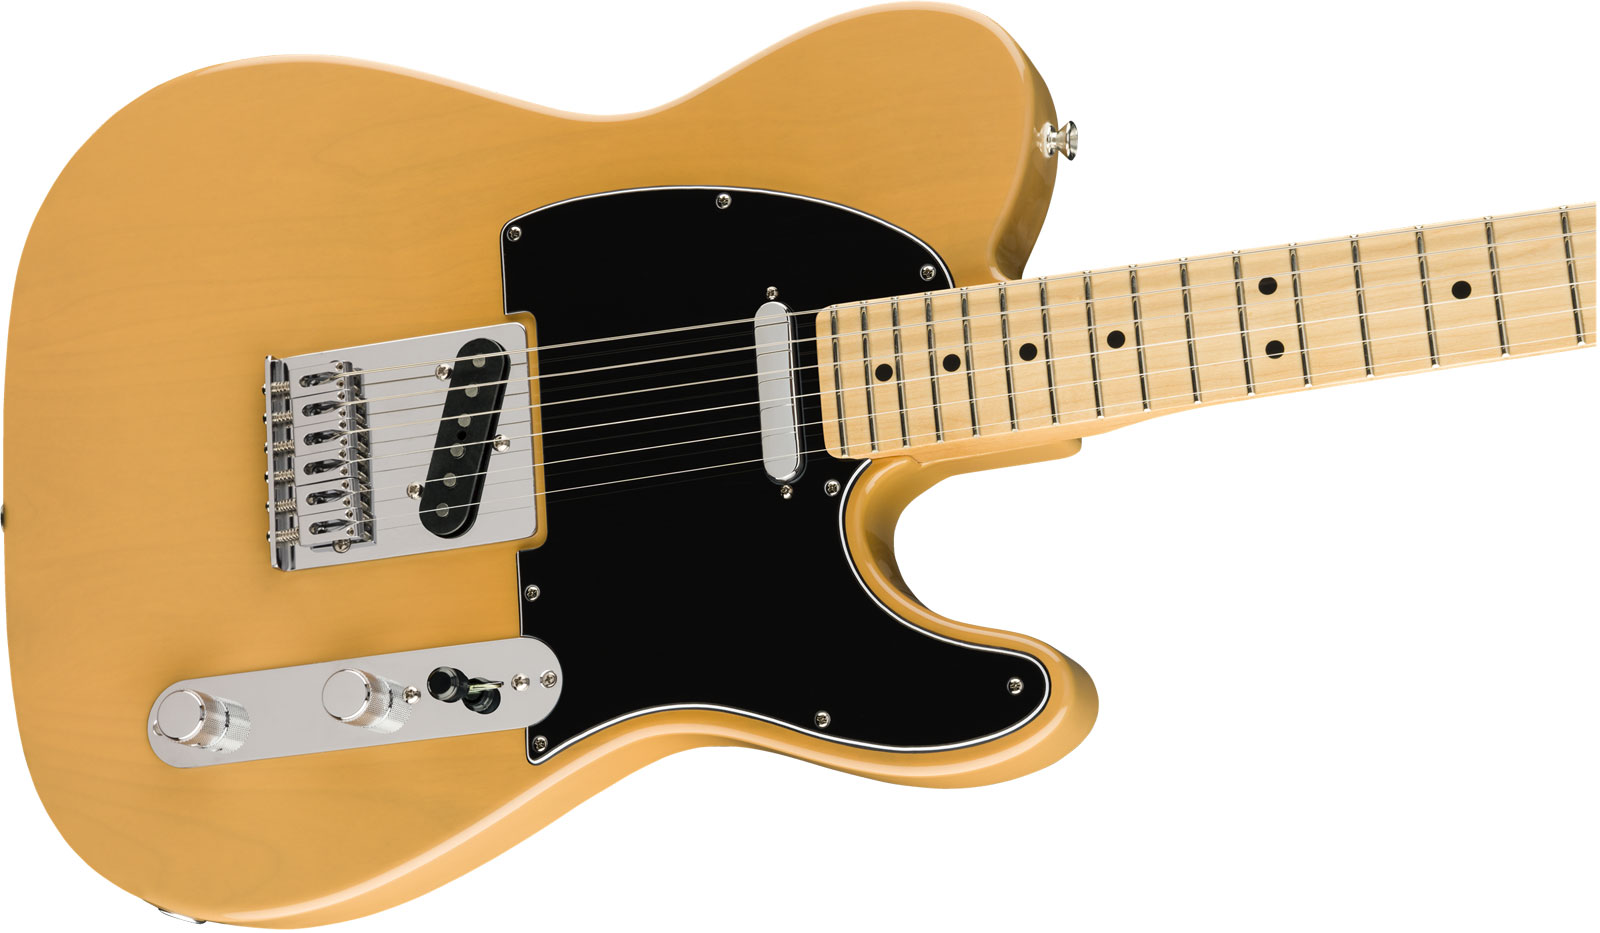 LIMITED EDITION PLAYER TELECASTER, MAPLE FINGERBOARD, BUTTERSCOTCH BLONDE